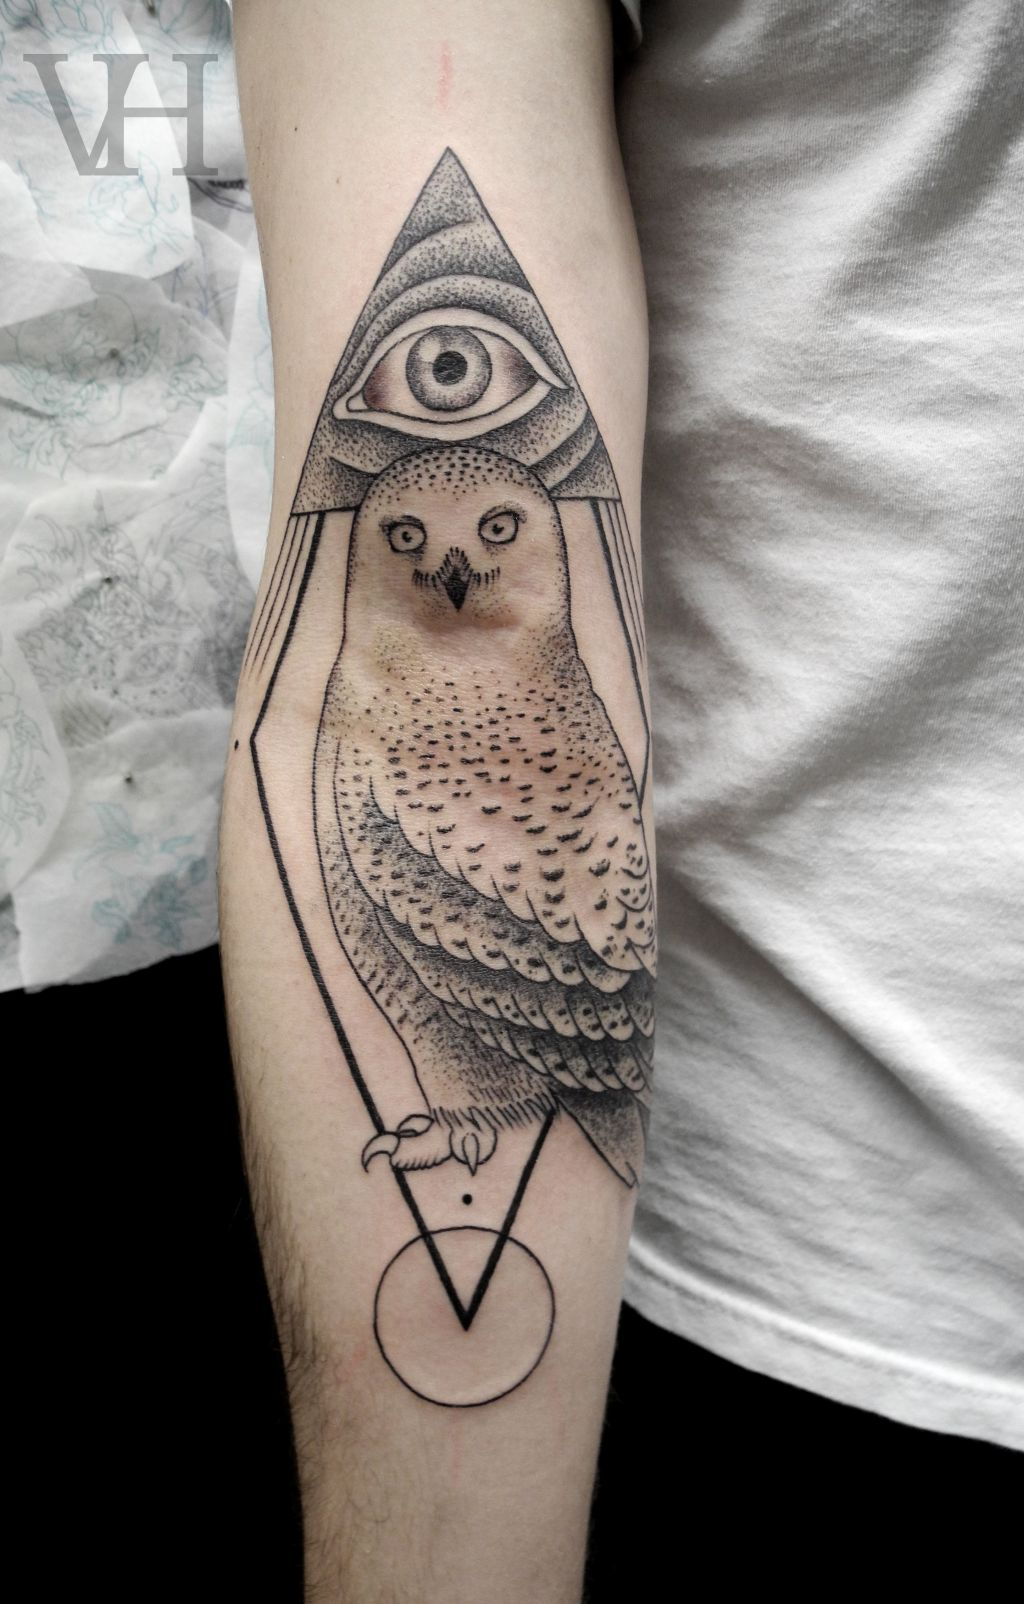 Tattoo Ideas, Valentine Hirsch, Ass Tattoo, Owls Tattoo